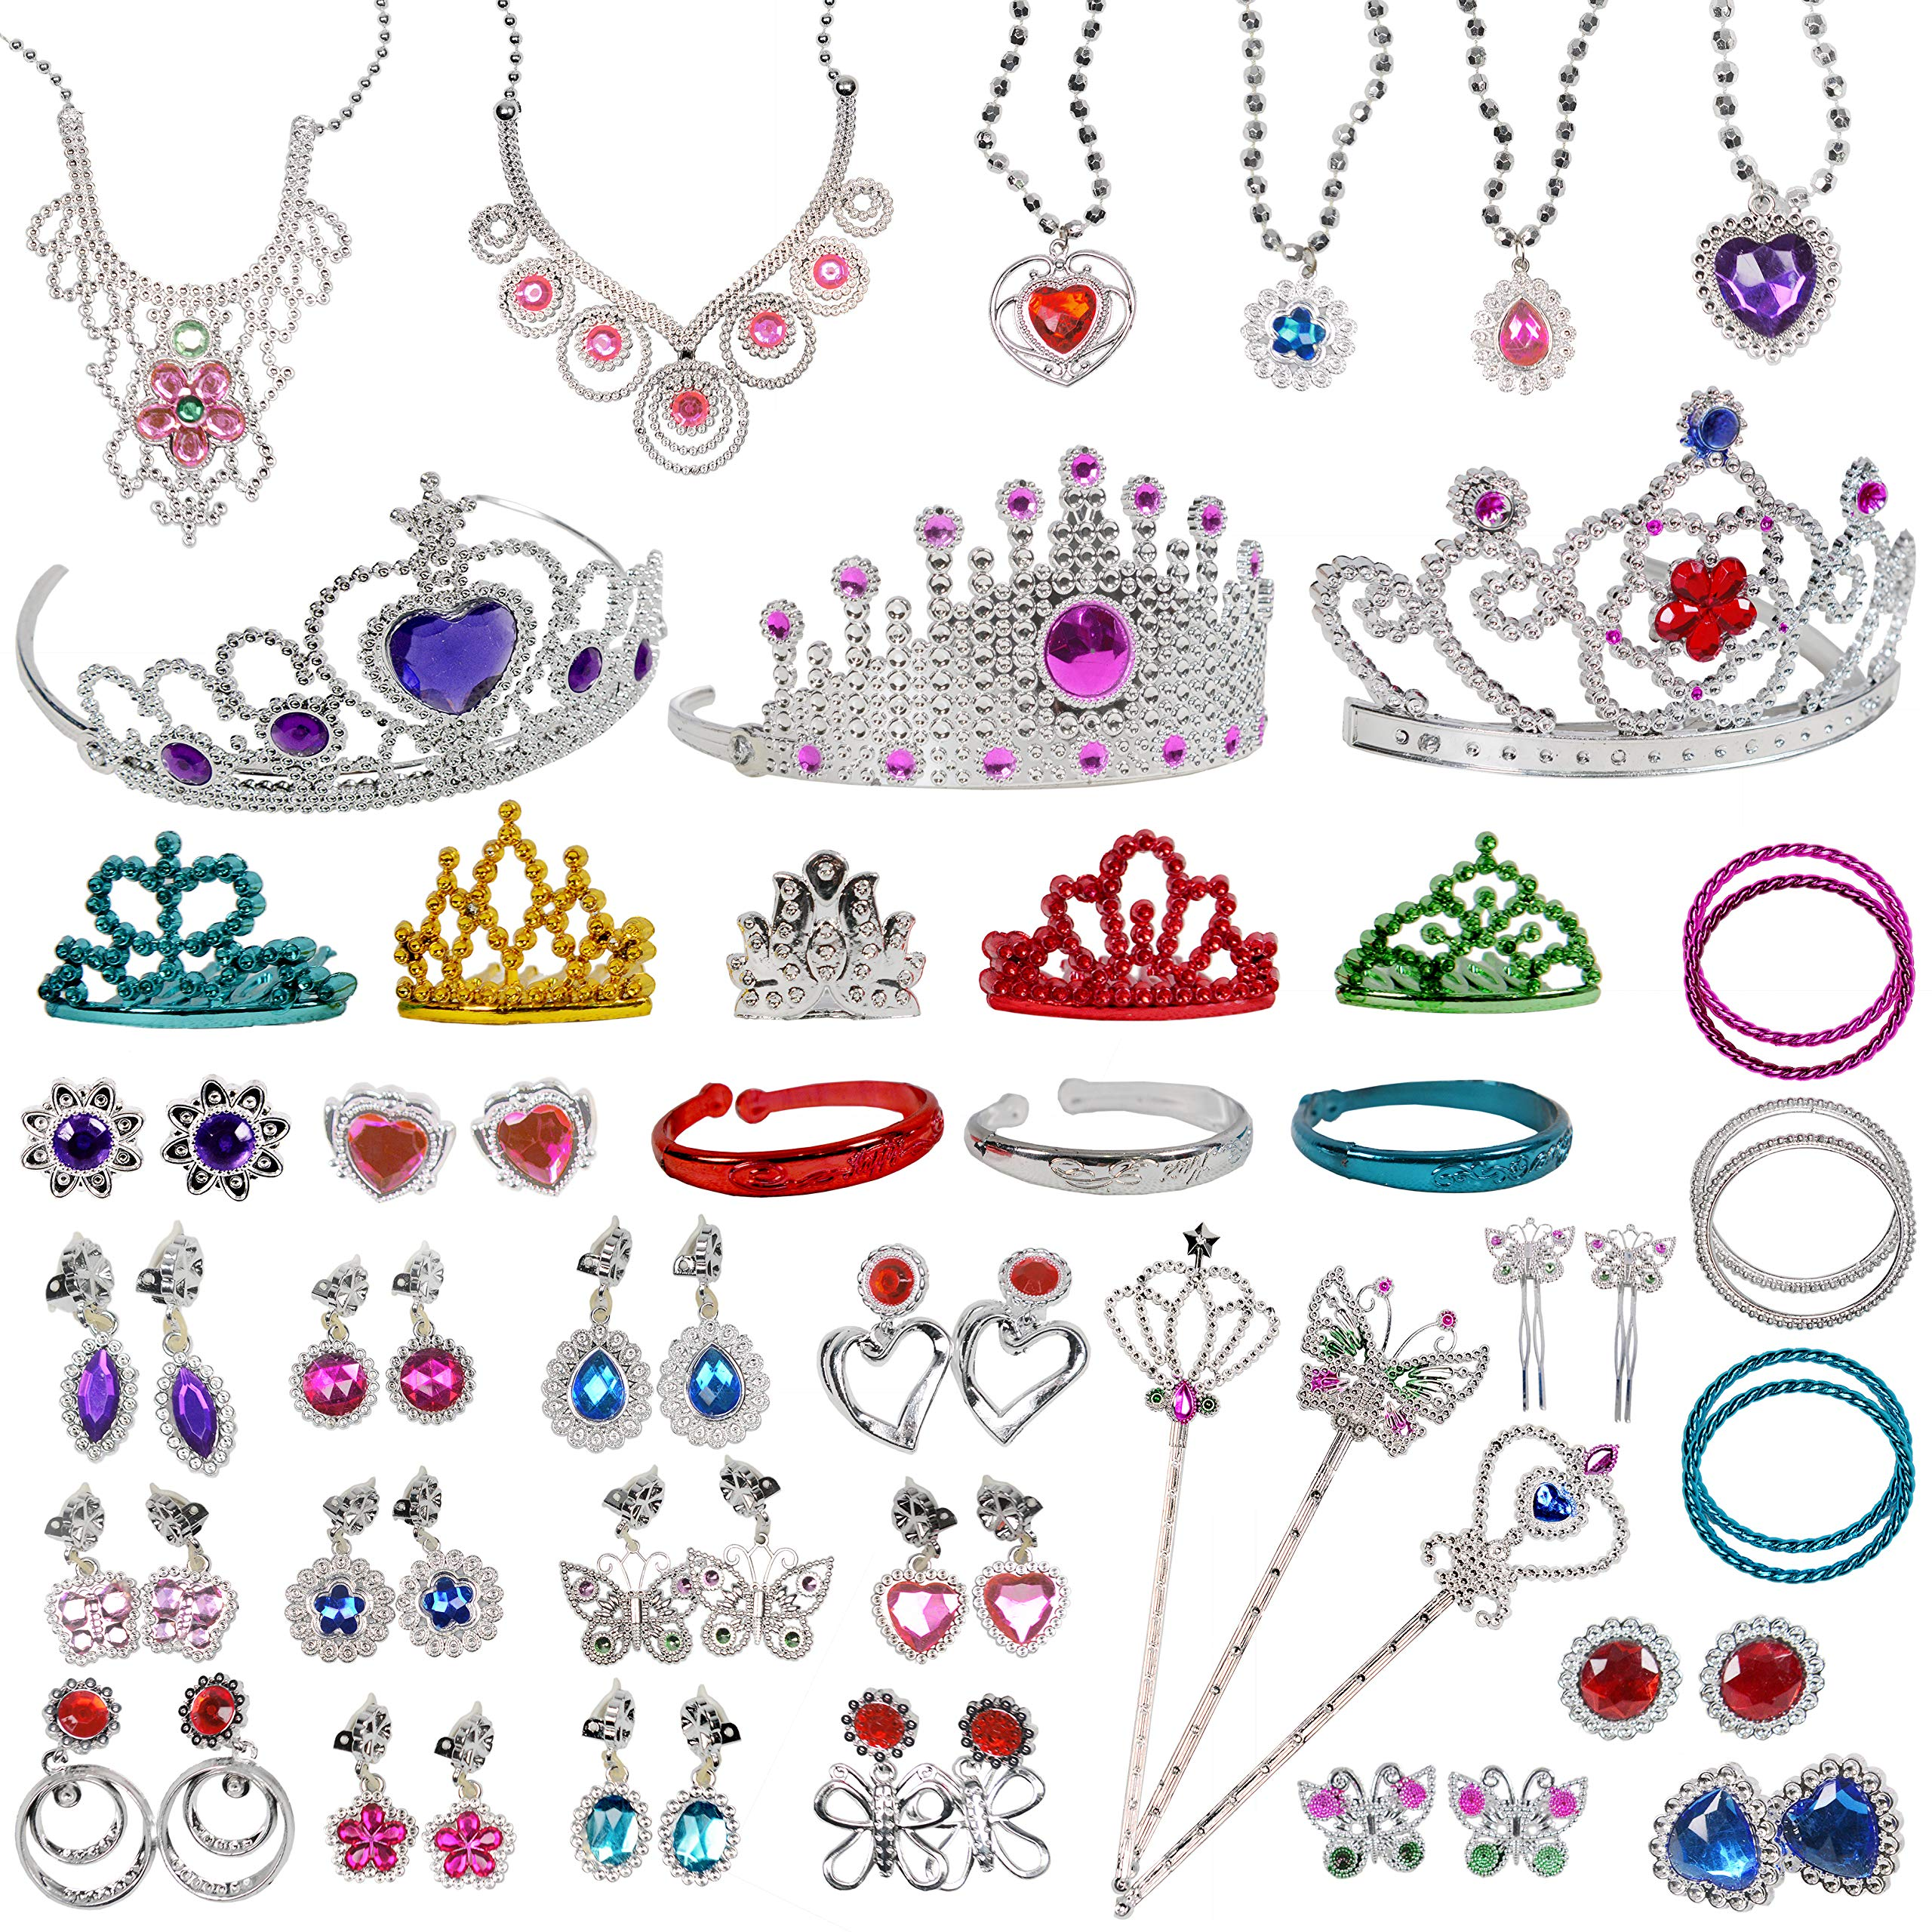 Jewelry Toy,62 Pieces Princess Pretend Jewelry Toy Playset,Assorted Jewelry Dress Up Toy Rings,Earrings,Necklaces,Crowns,Bracelets,Wands for Girls Birthday Gift,Princess Party Favors